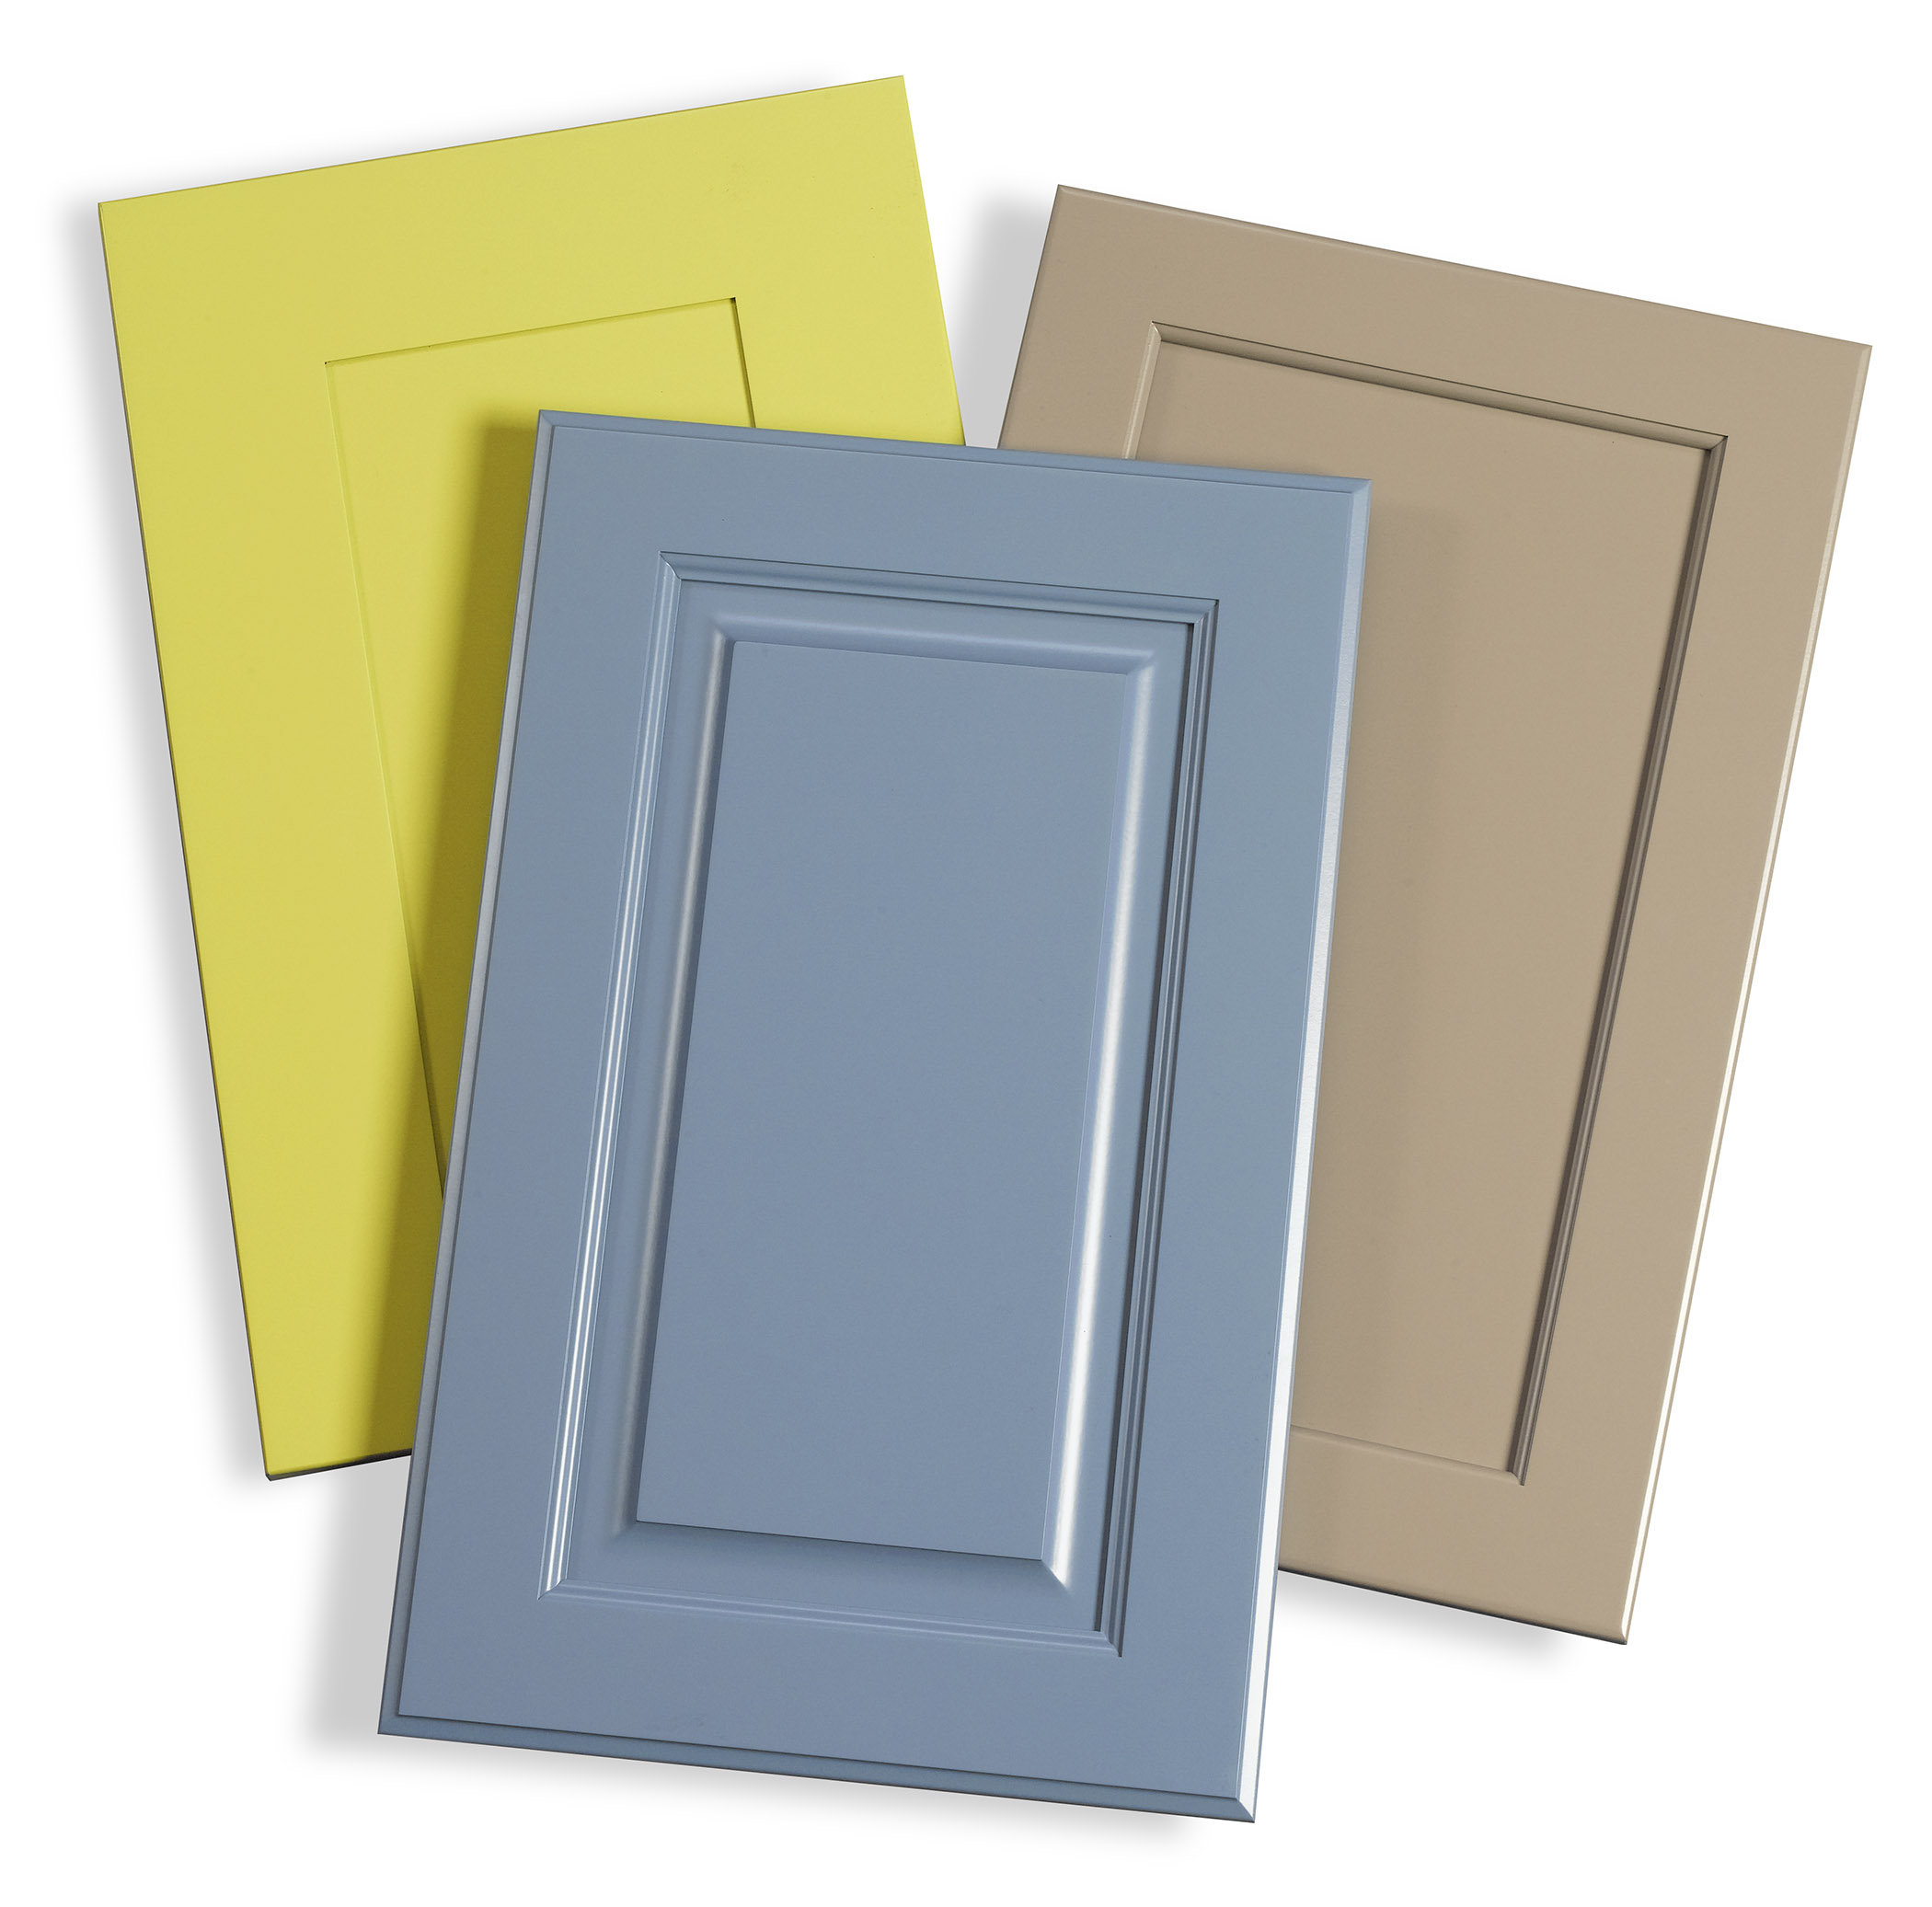 CONESTOGA WOOD GROWS 5-PIECE PAINTED MDF DOOR PROGRAM BY 10